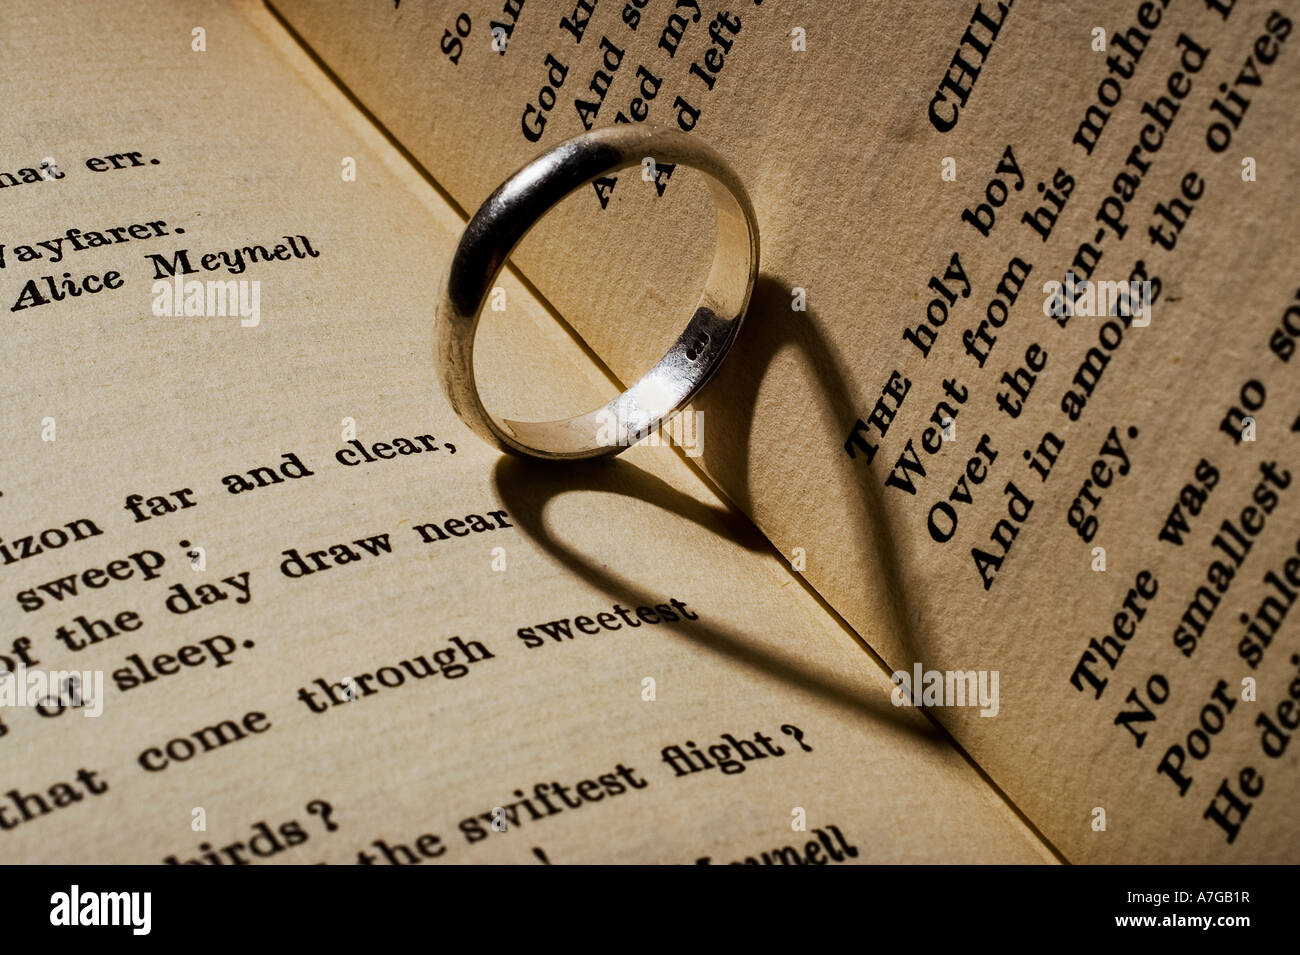 Wedding ring casting a heartshaped shadow on a book of poetry Stock